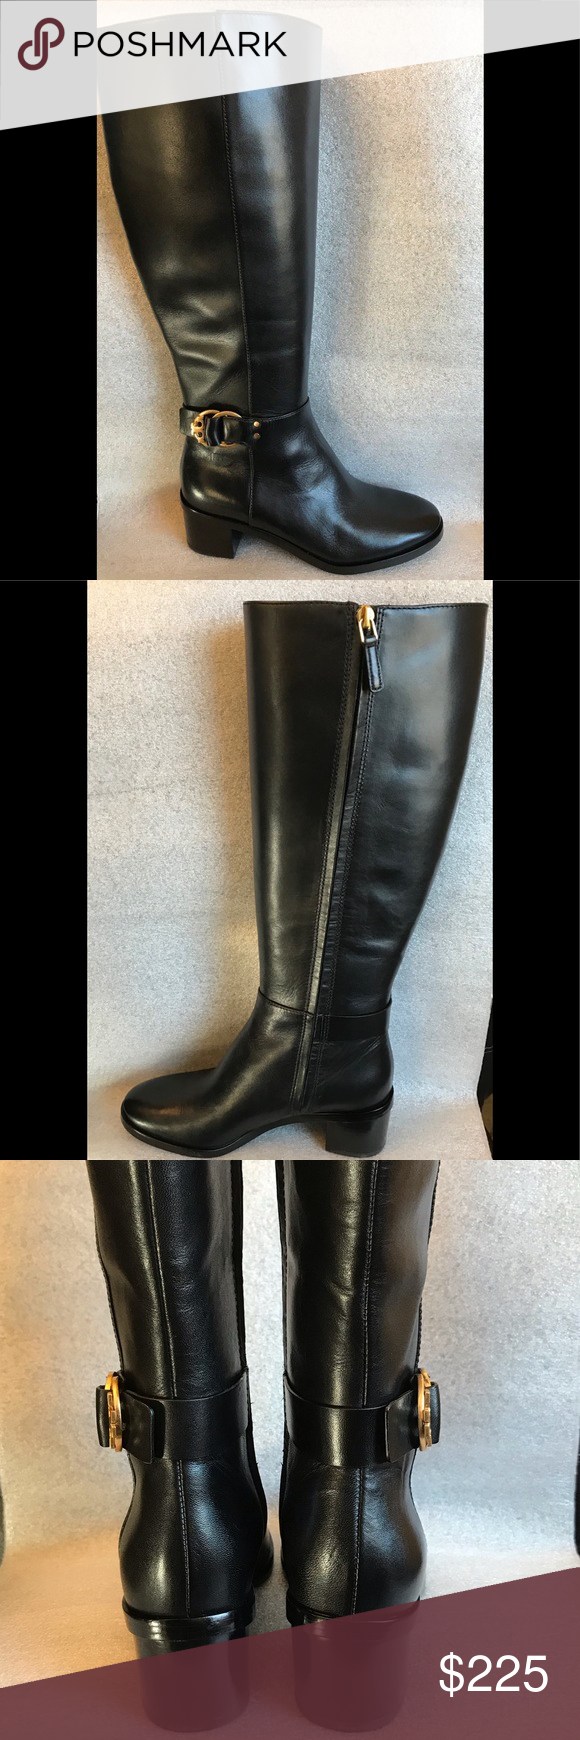 7bac5198375 Tory Burch Marsden Boot PERFECT BLACK LEATHER